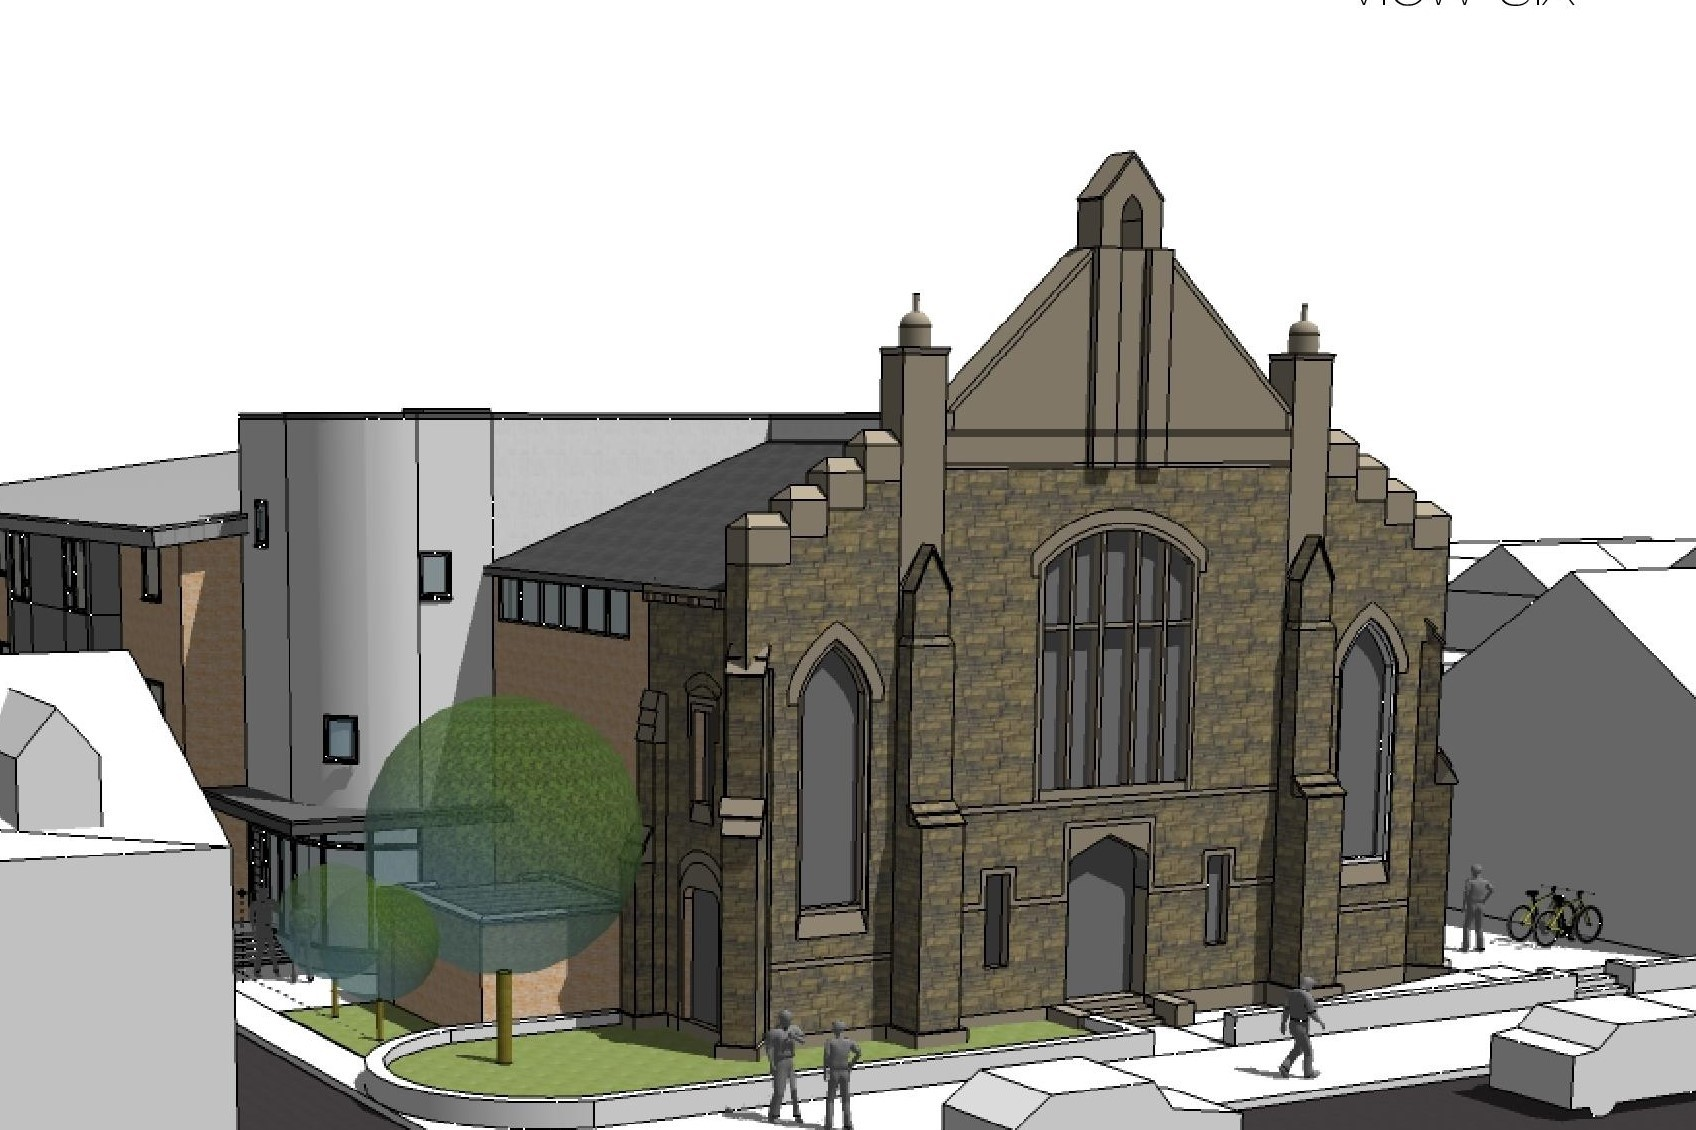 The plans for St Paul's Church on Arcot Street